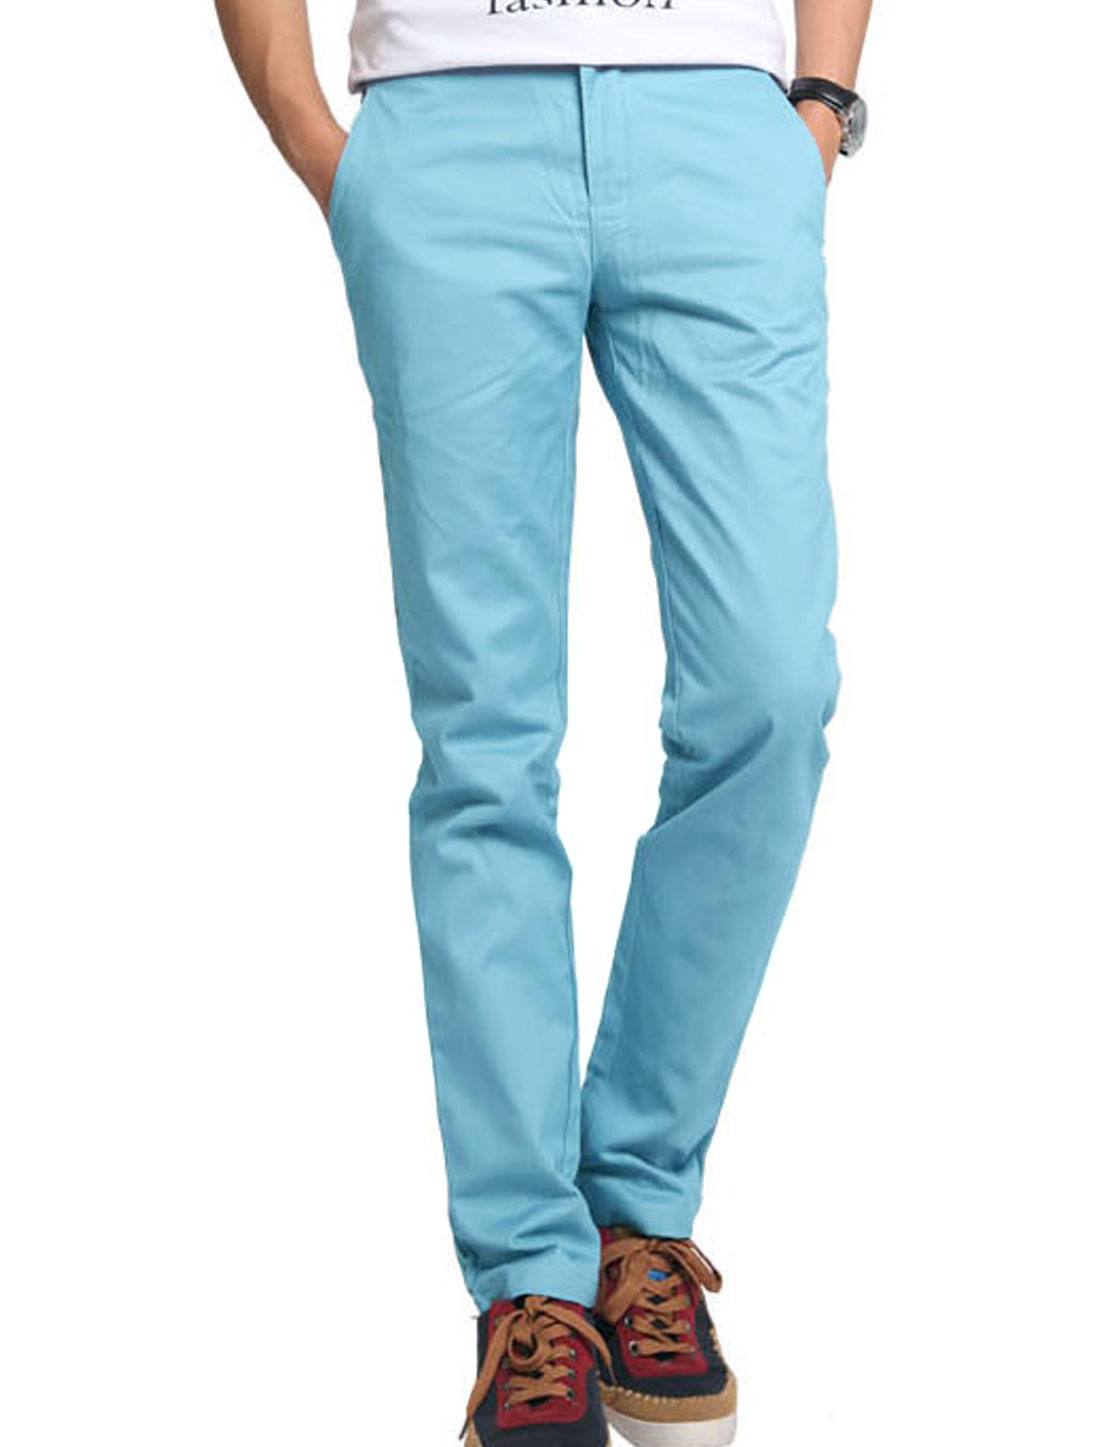 Men Zip Up Closed Flap Pocket Decor Leisure Slim Pants Light Blue W40